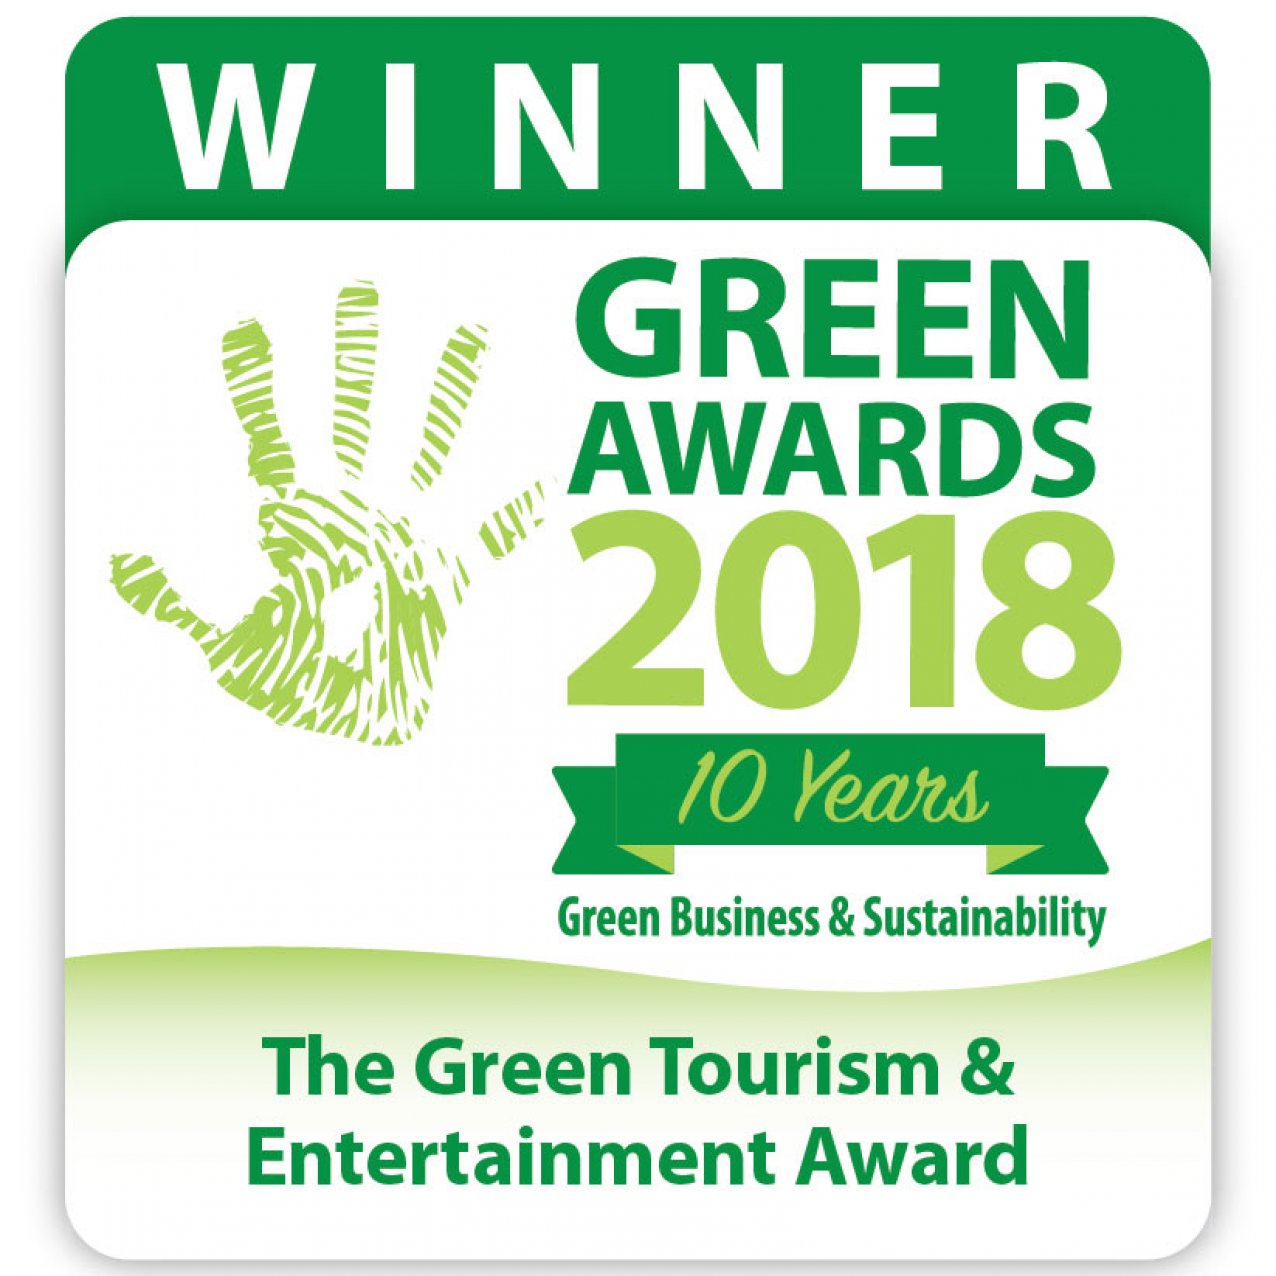 Green Tourism Award 2018